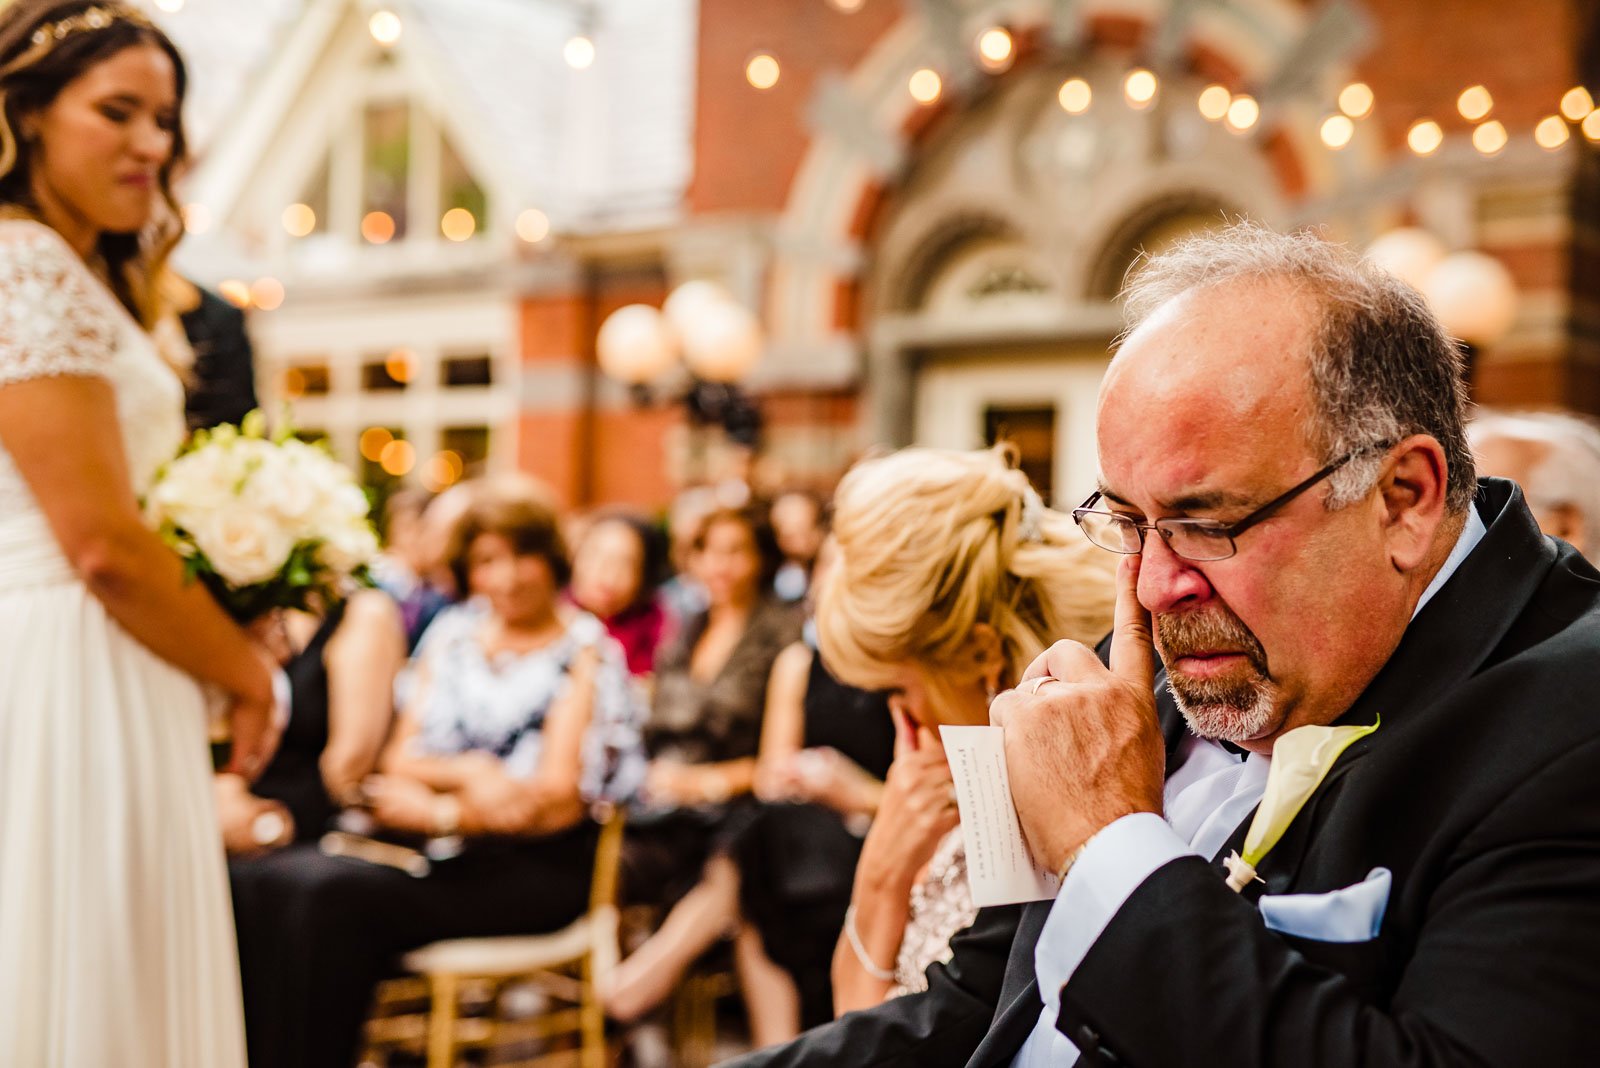 Father of the bride cries during ceremony